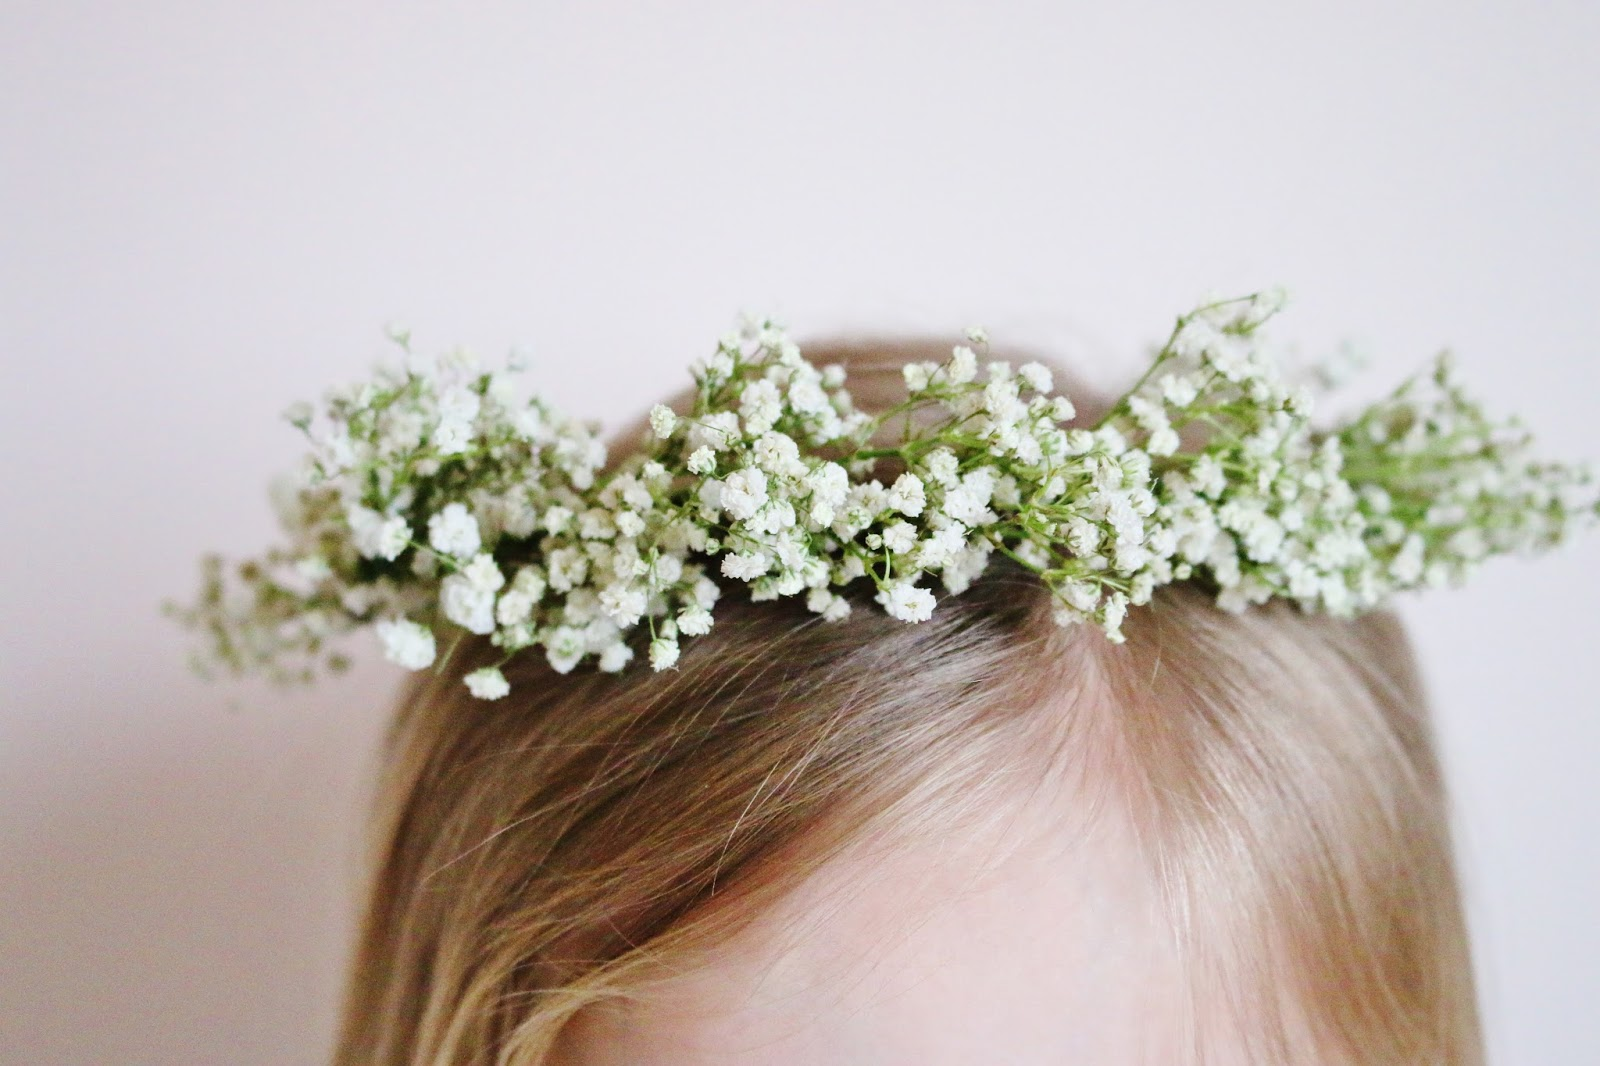 My simple modest chic diy babys breath flower crown tutorial if you follow me on instagram you have already seen a preview of these little flower crownshere here here originally i made a few of them for izmirmasajfo